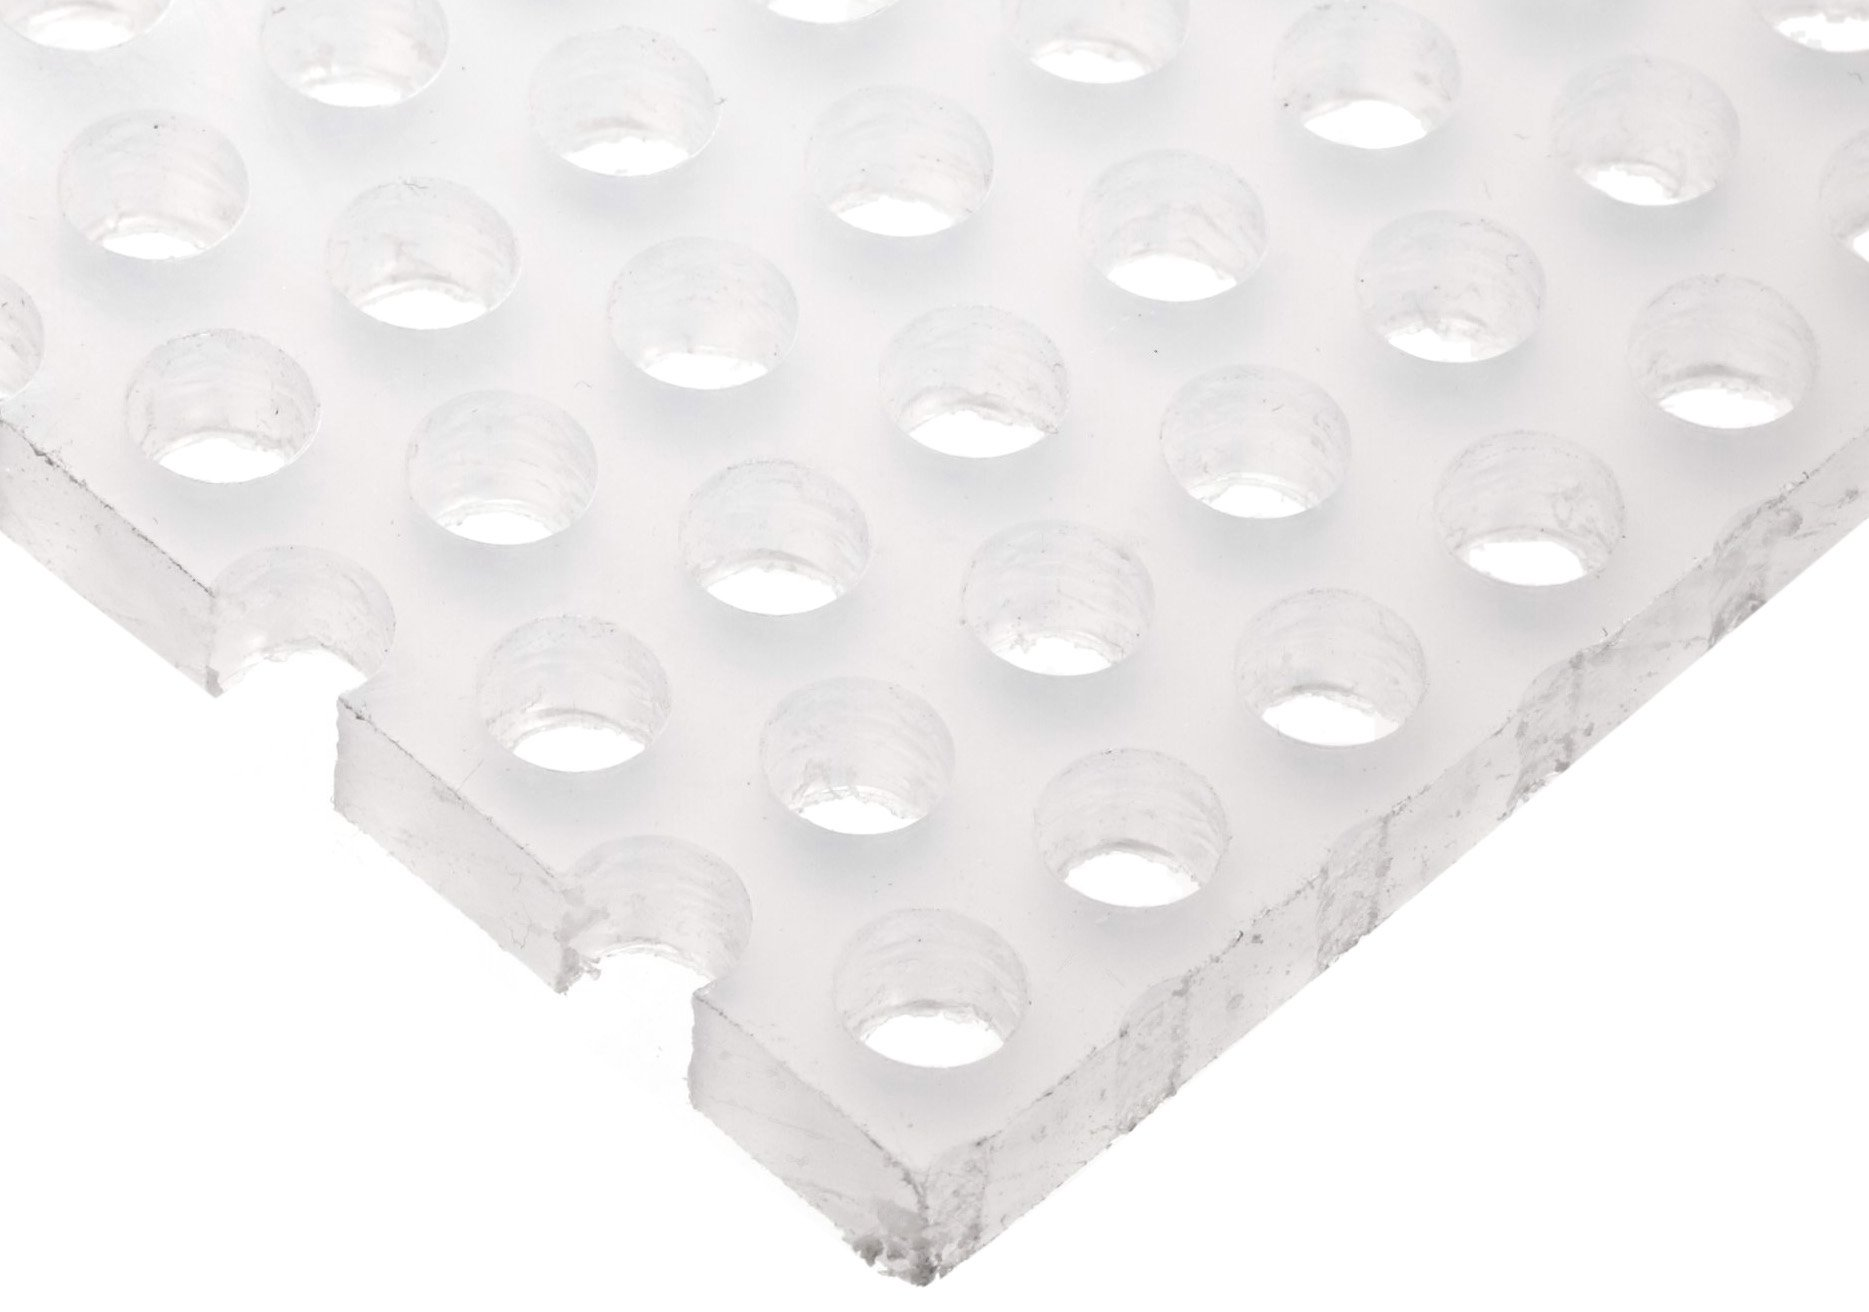 Polypropylene (PP) Perforated Sheet, Staggered Holes, Opaque White, 0.250'' Thickness, 12'' Width, 24'' Length, Staggered 1/4'' Holes, 0.375'' Center to Center by Small Parts